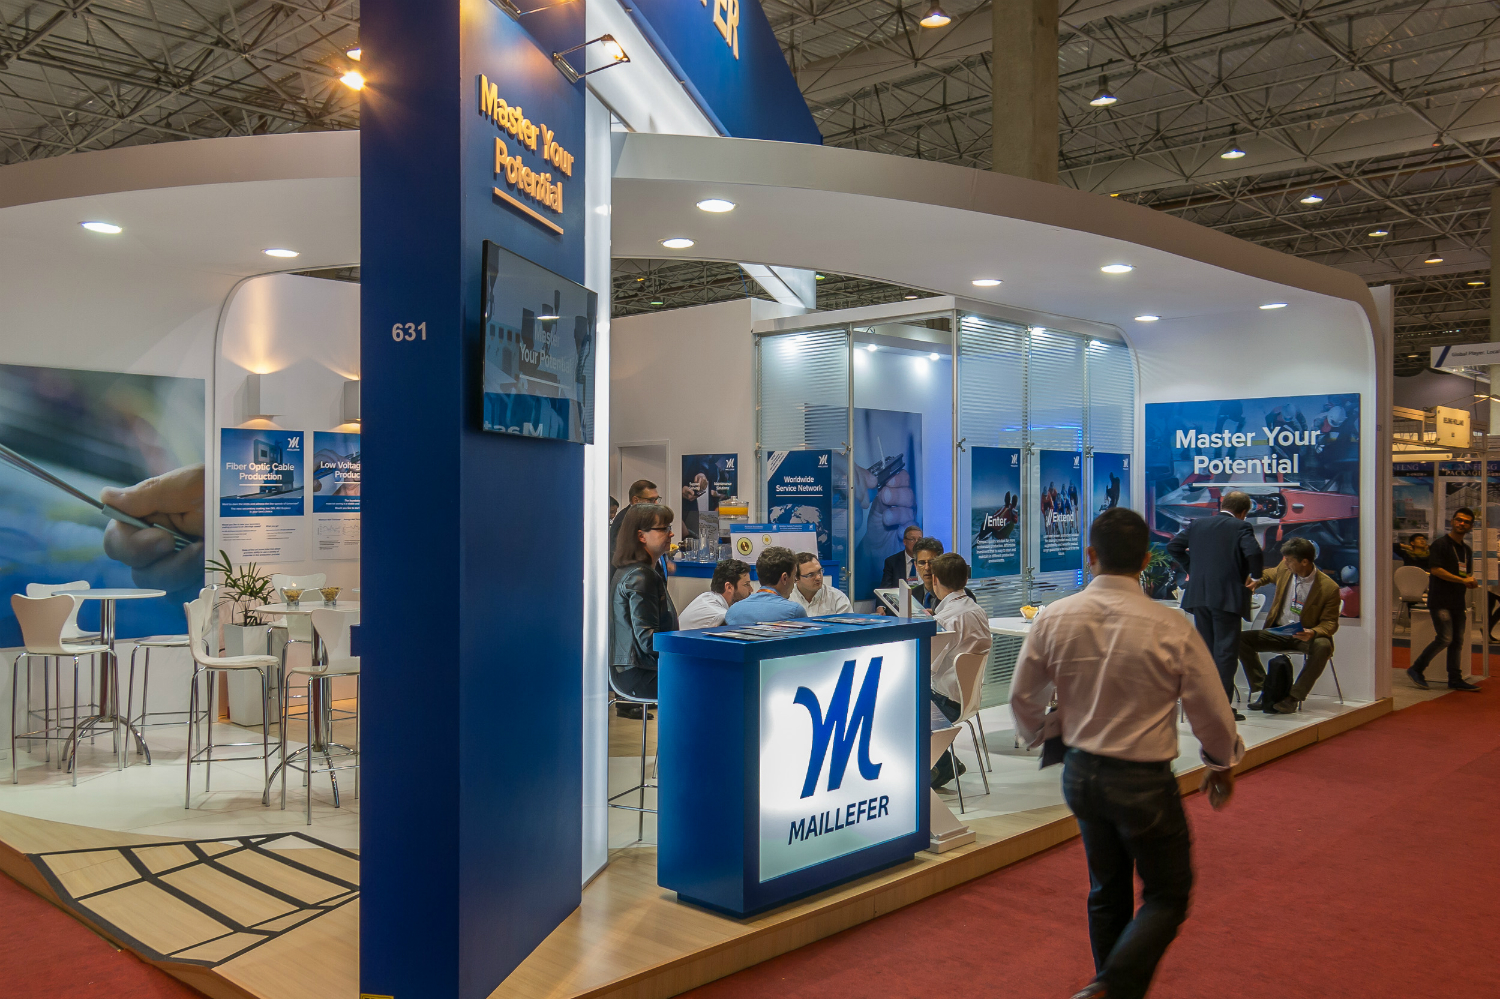 Maillefer News from the wire South America 2015 Show